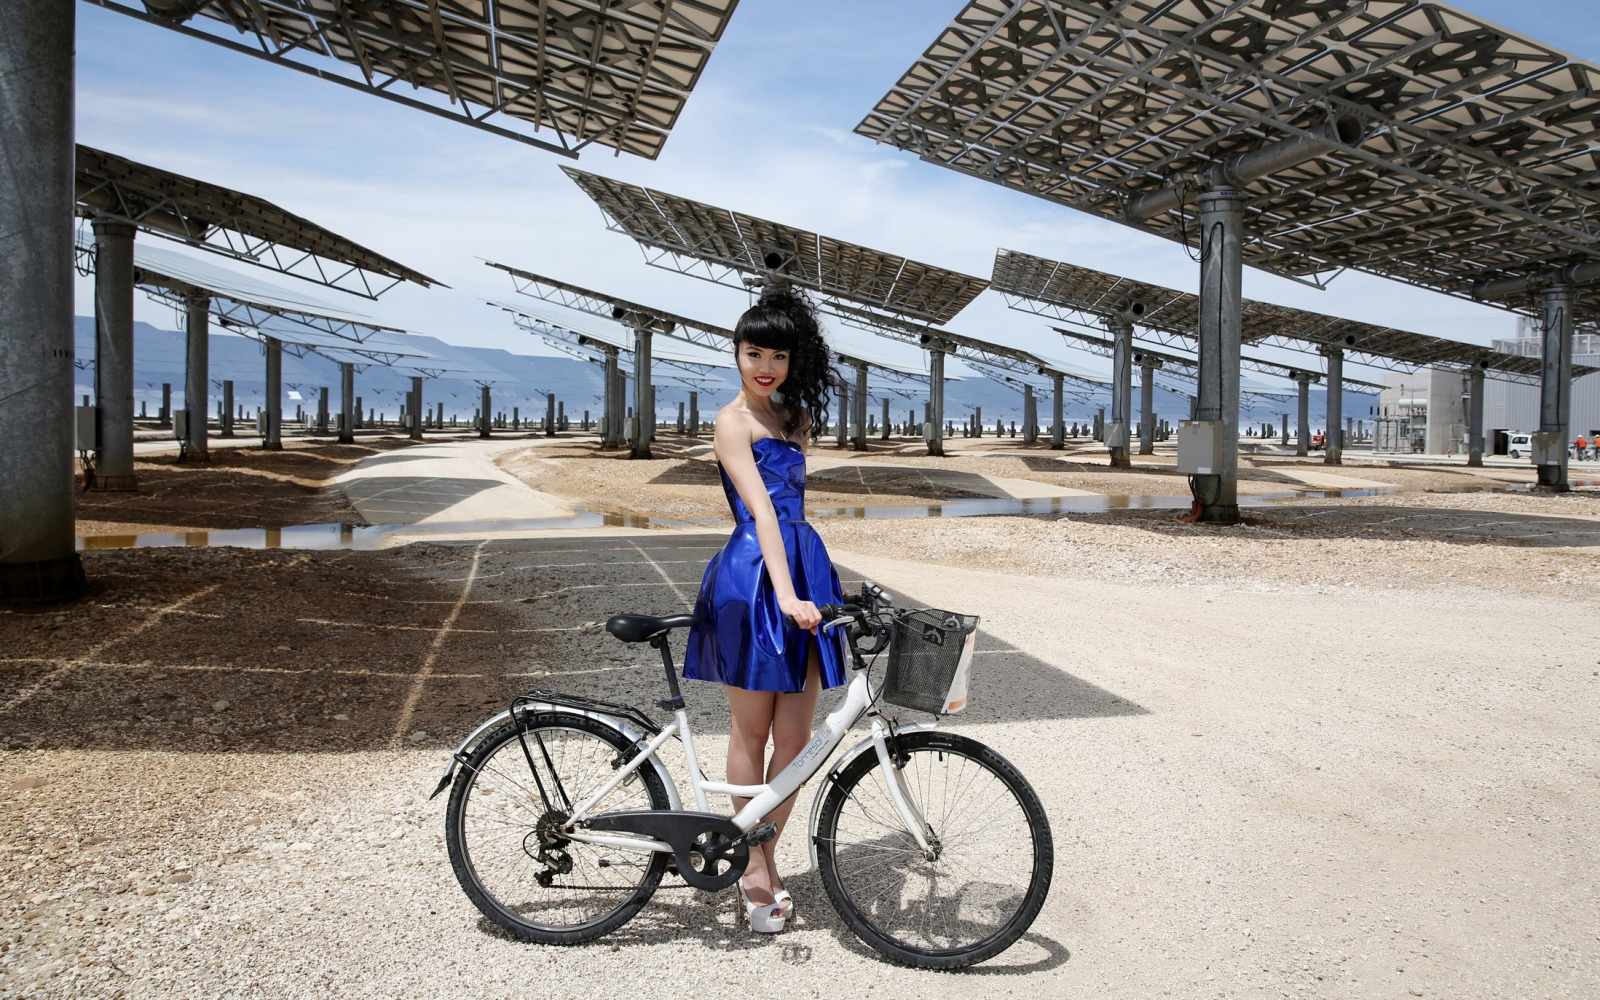 Solar Power Catwalk